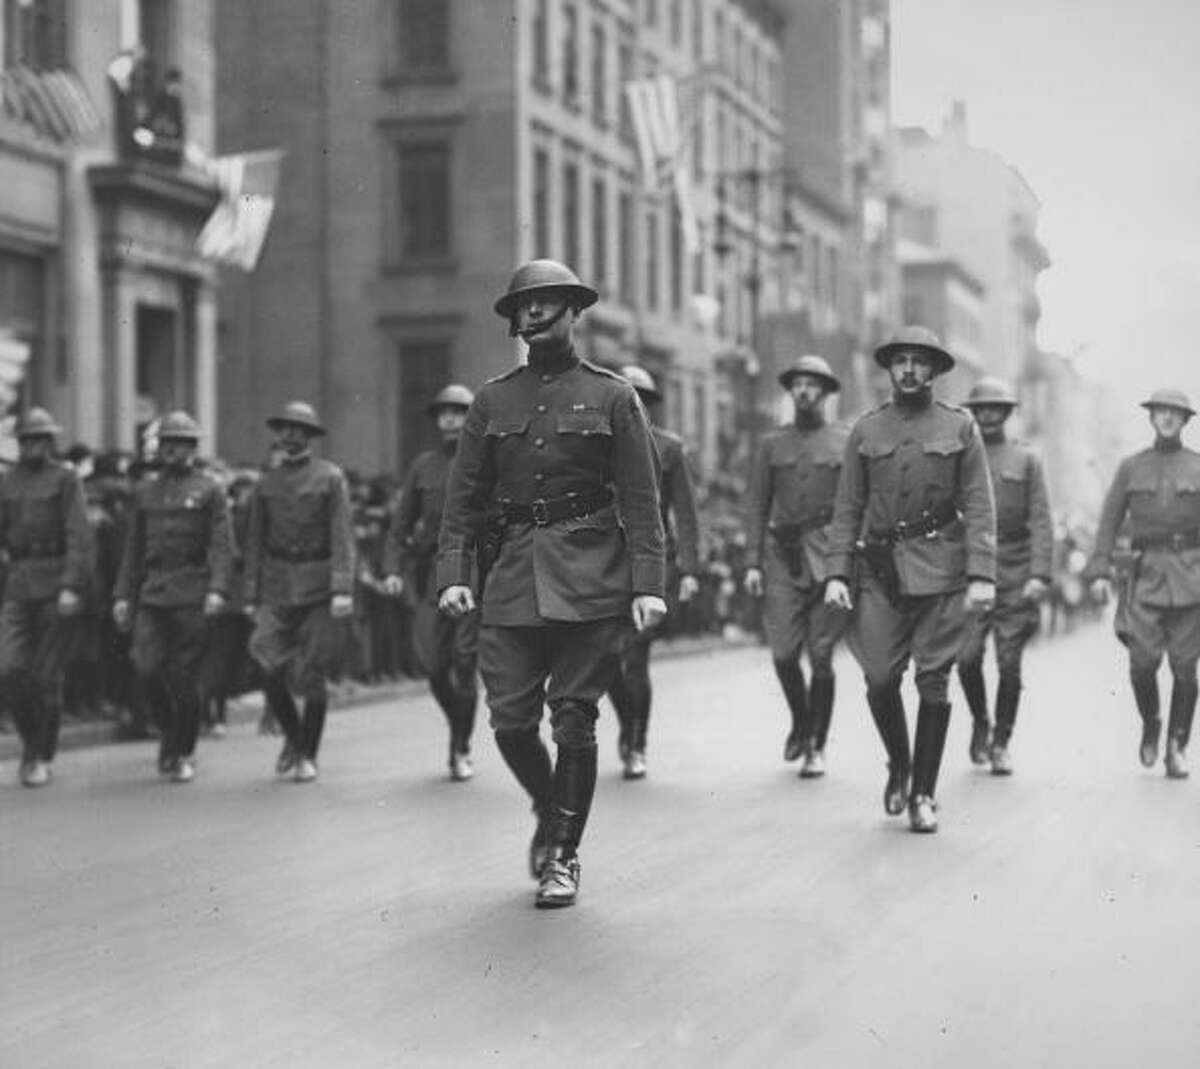 1918 Soldiers of this era were seen wearing olive wool coats and high boots, which proved helpful during the muddy trench warfare.